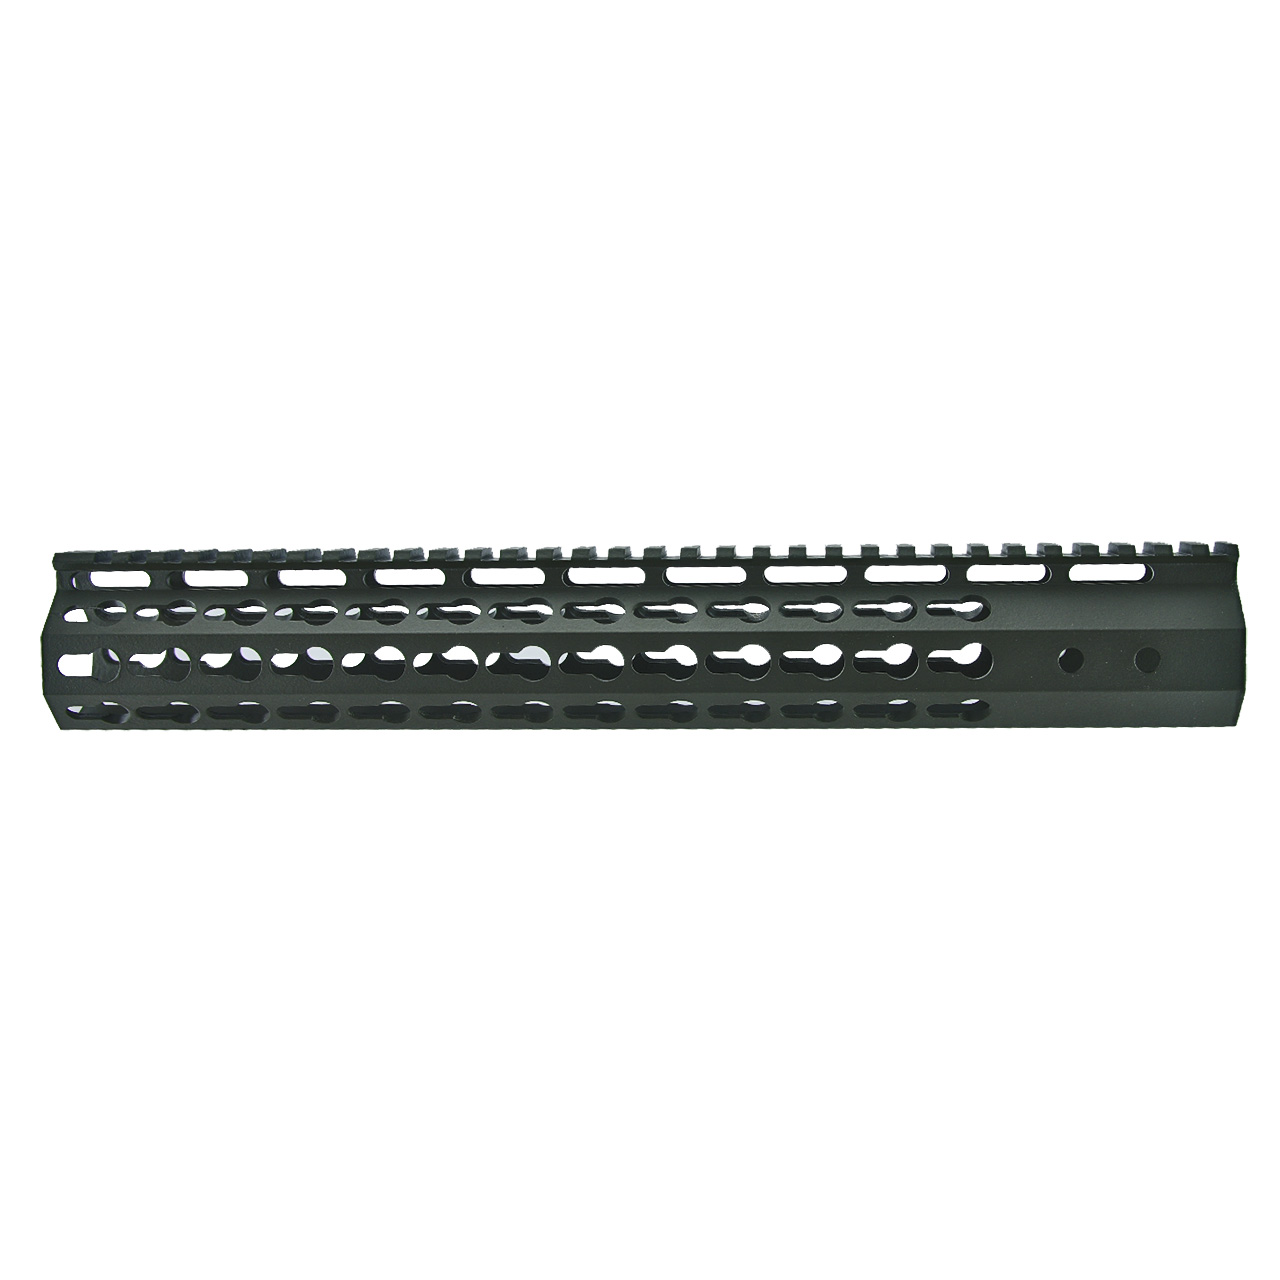 AR15 7 Sided Keymod Handguard Cerakoted (Various Sizes And Colors Available)